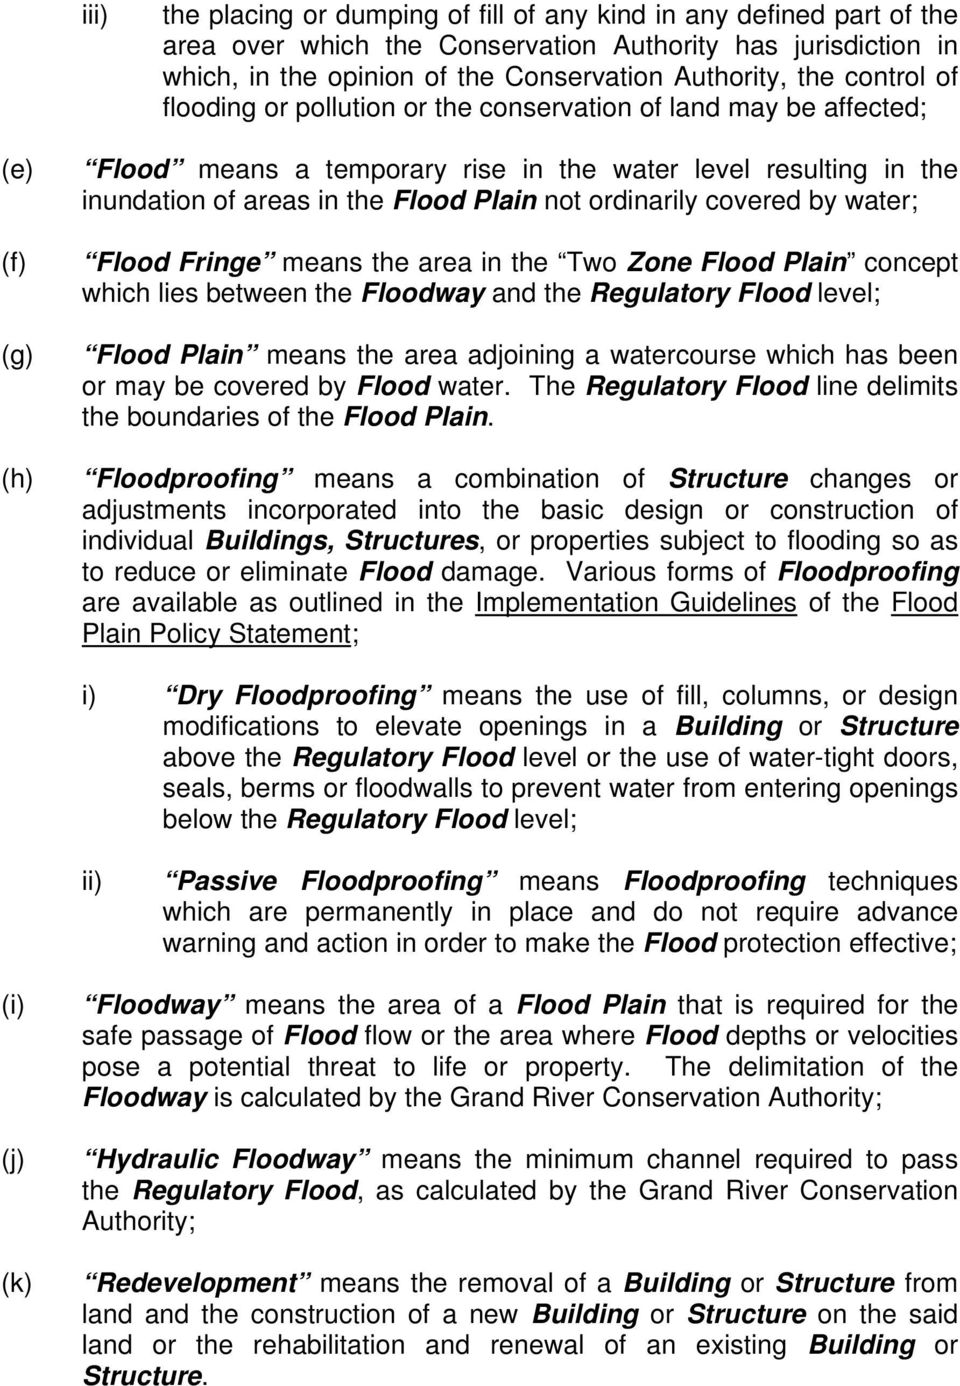 not ordinarily covered by water; Flood Fringe means the area in the Two Zone Flood Plain concept which lies between the Floodway and the Regulatory Flood level; Flood Plain means the area adjoining a